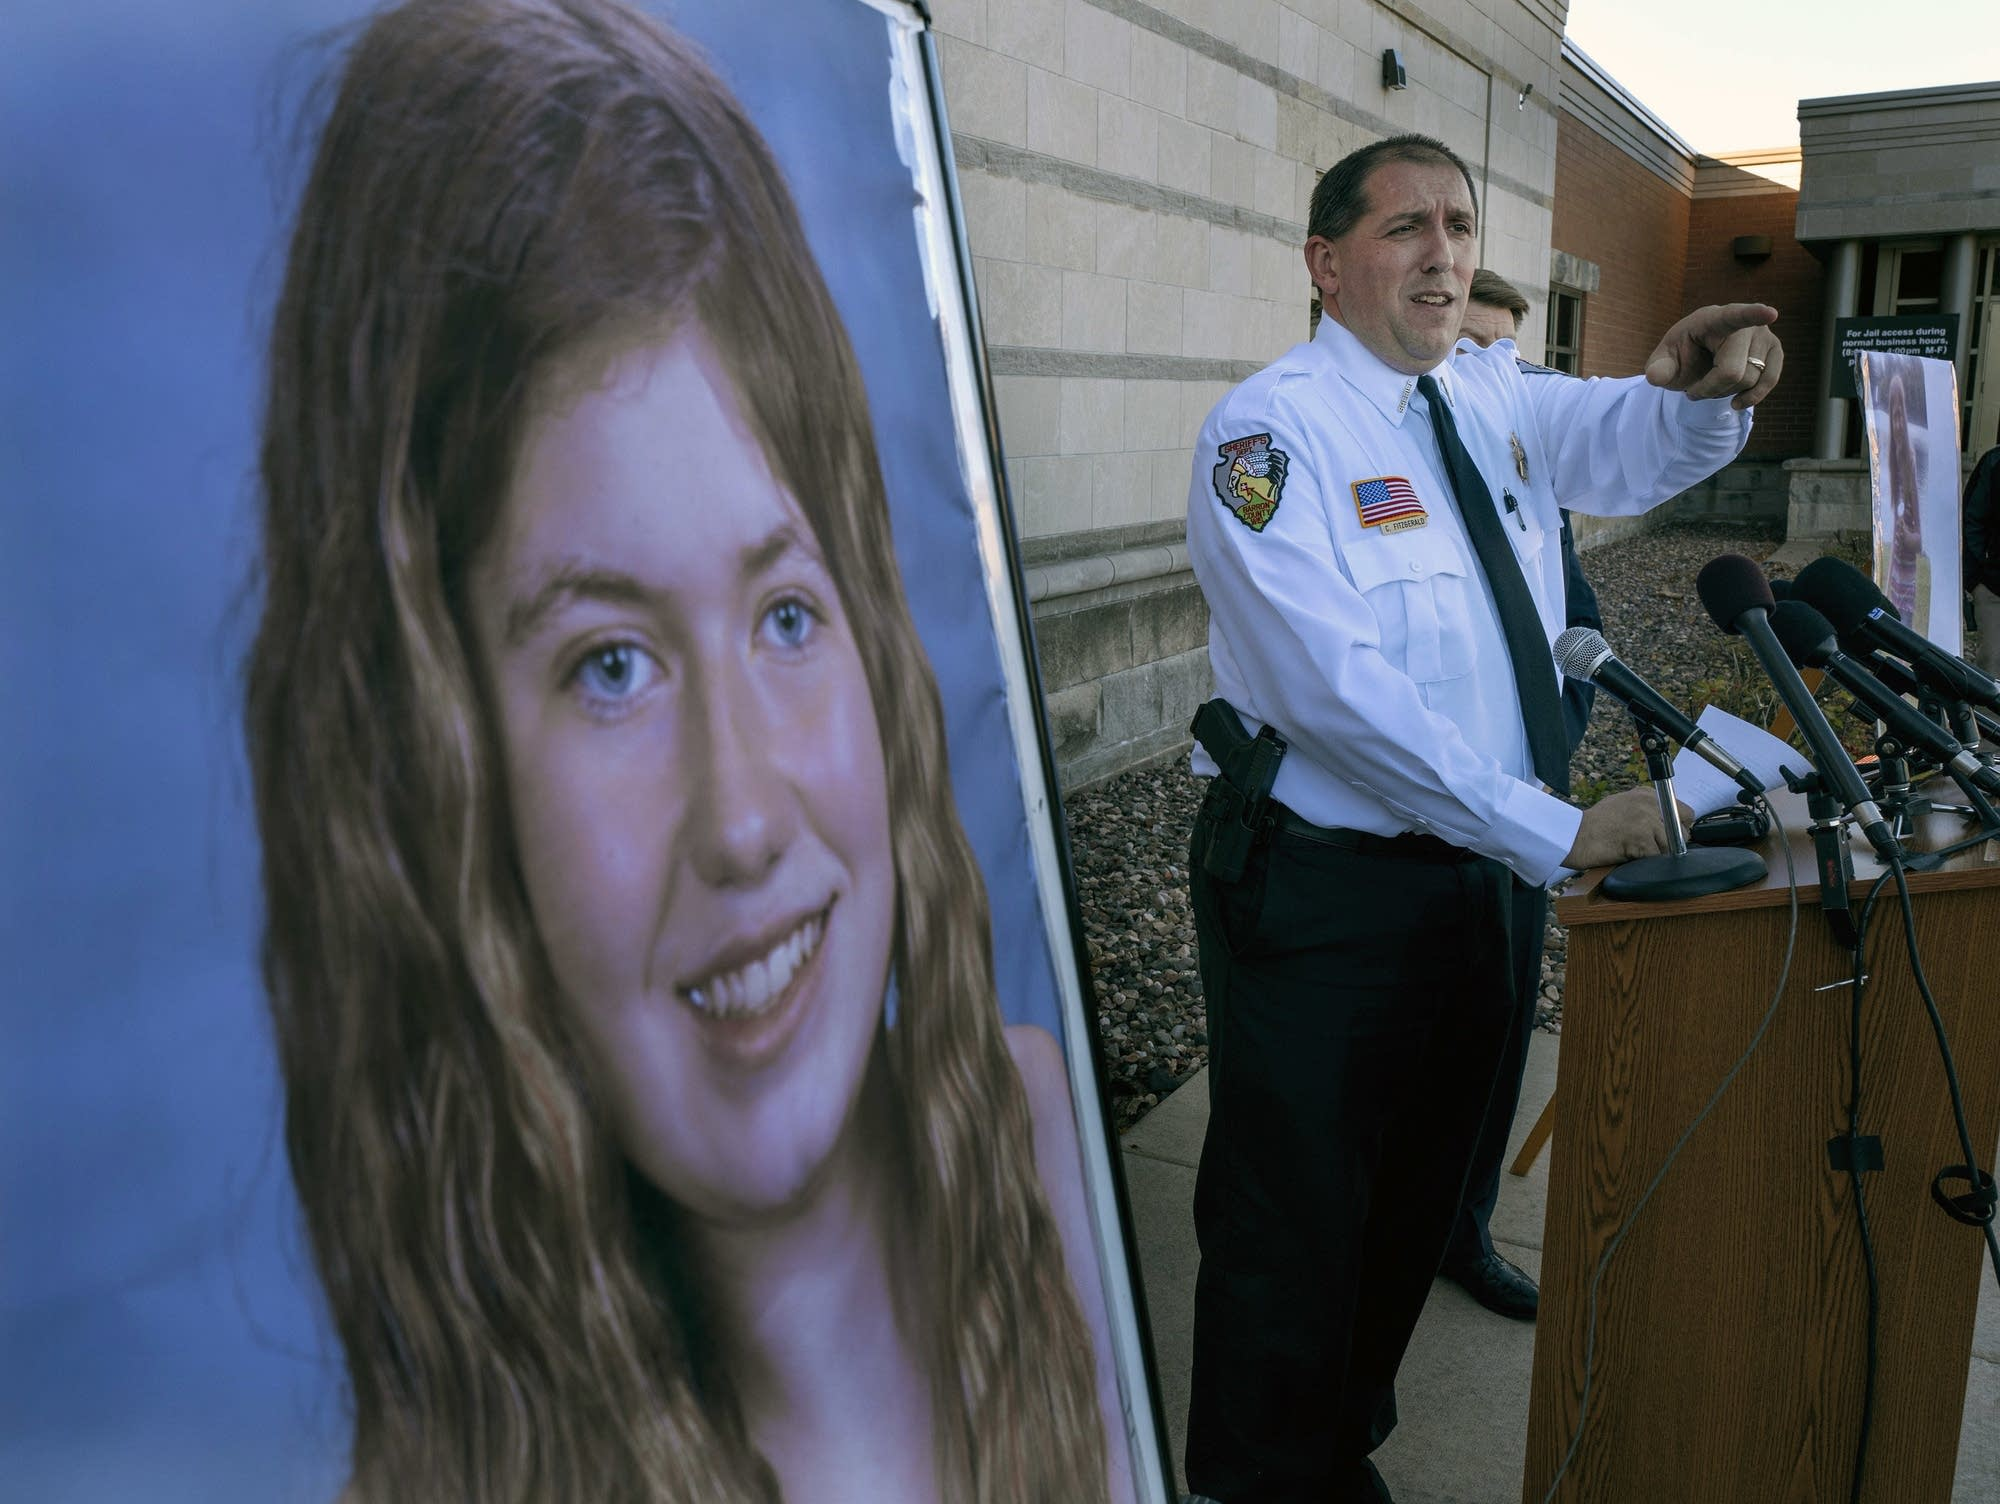 Search for Jayme Closs